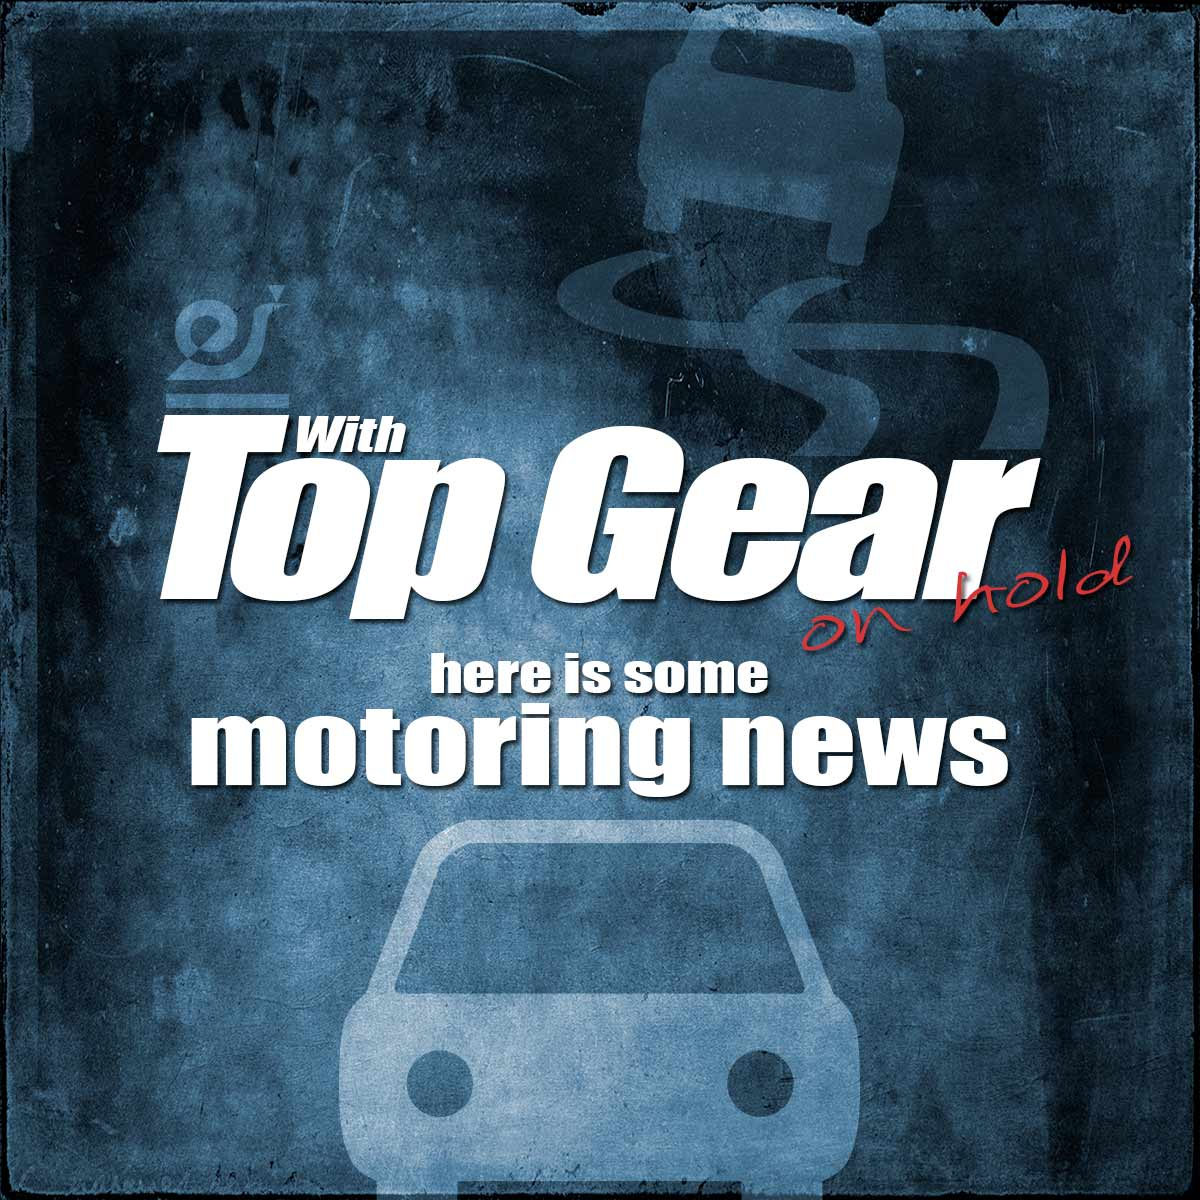 With Top Gear on hold, here is some motoring news.